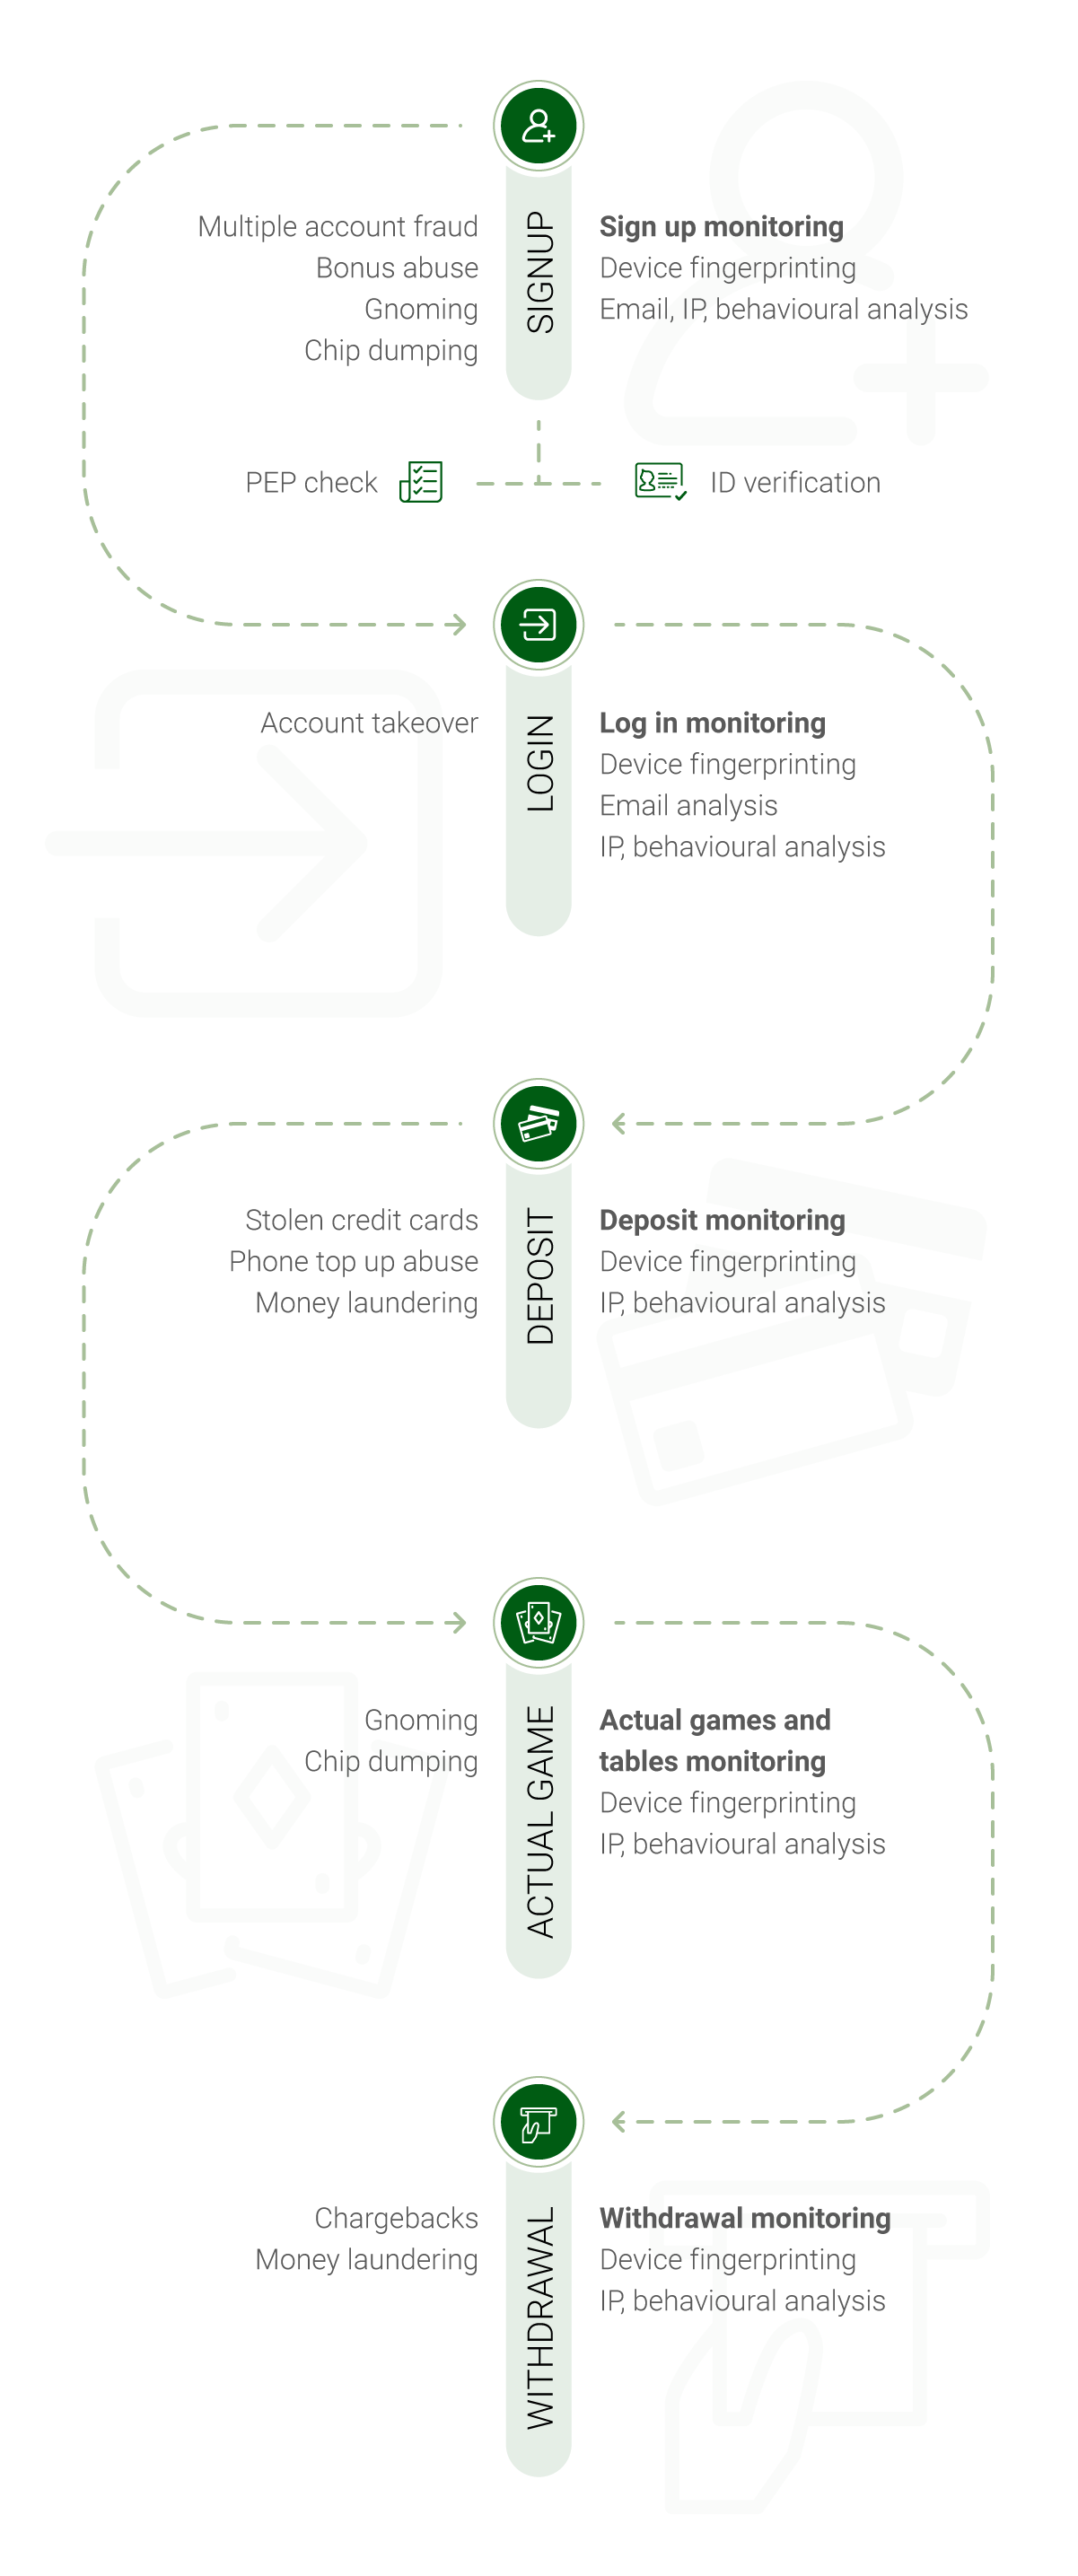 user journey showing gambling fraud potential